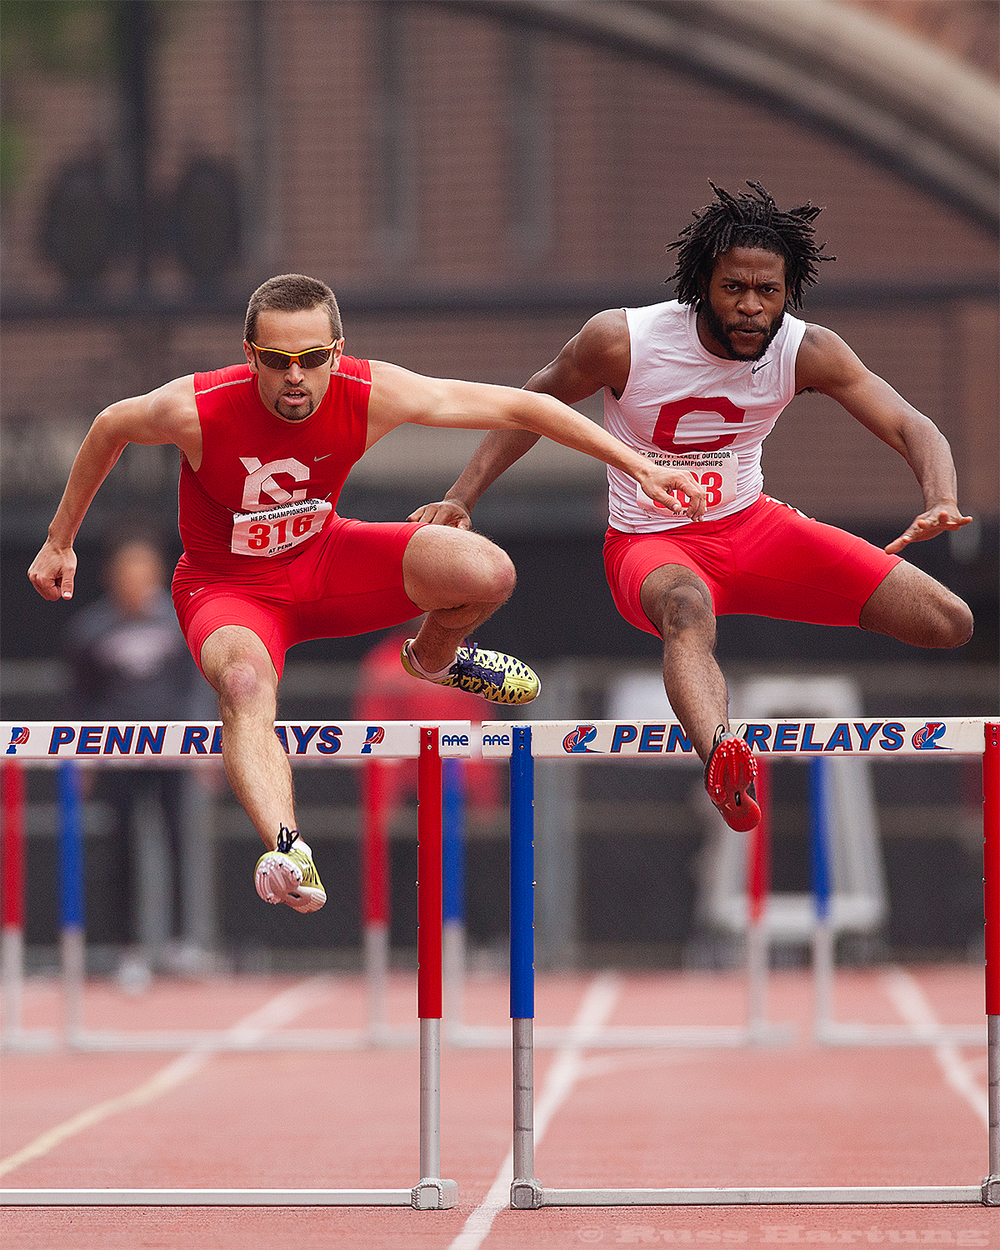 These hurdlers seem to be synchronized at the Penn Relays.